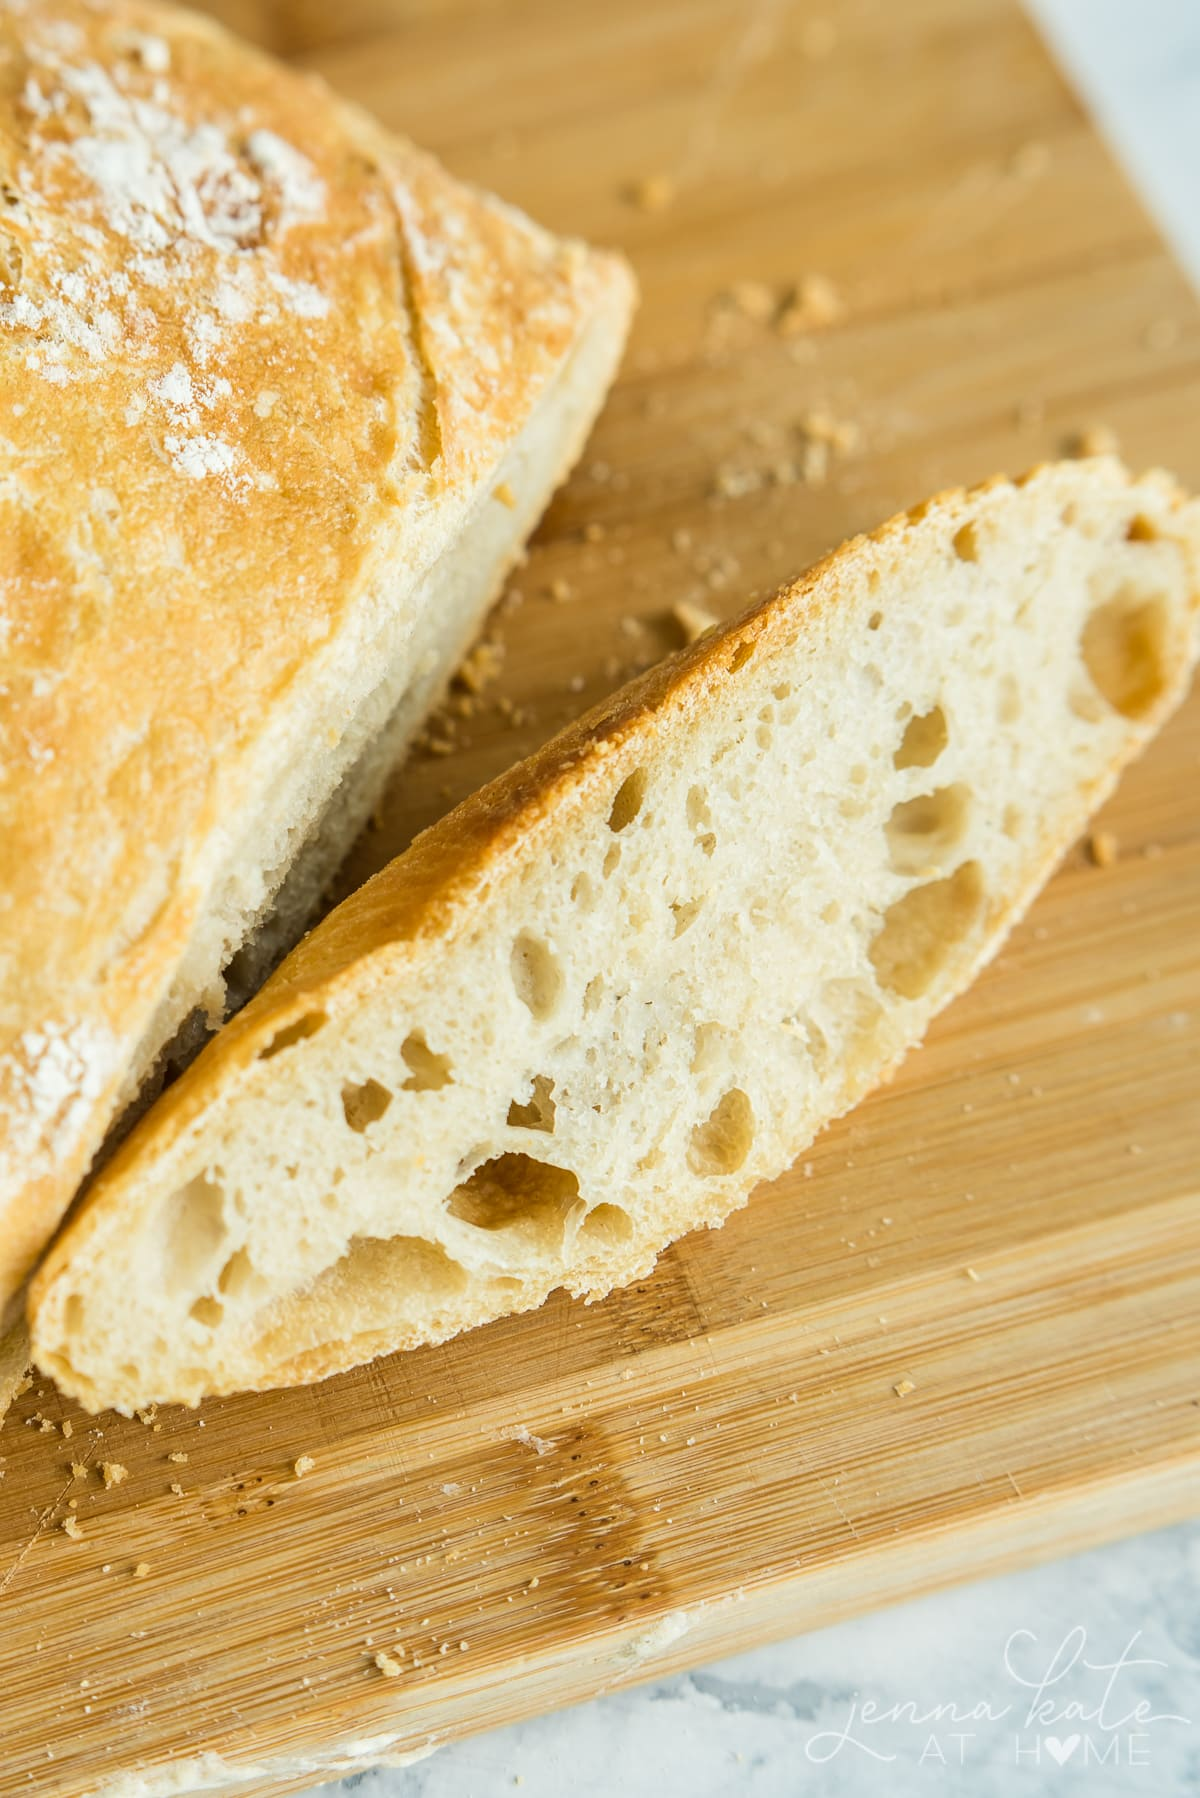 Texture of the simple no knead bread loaf